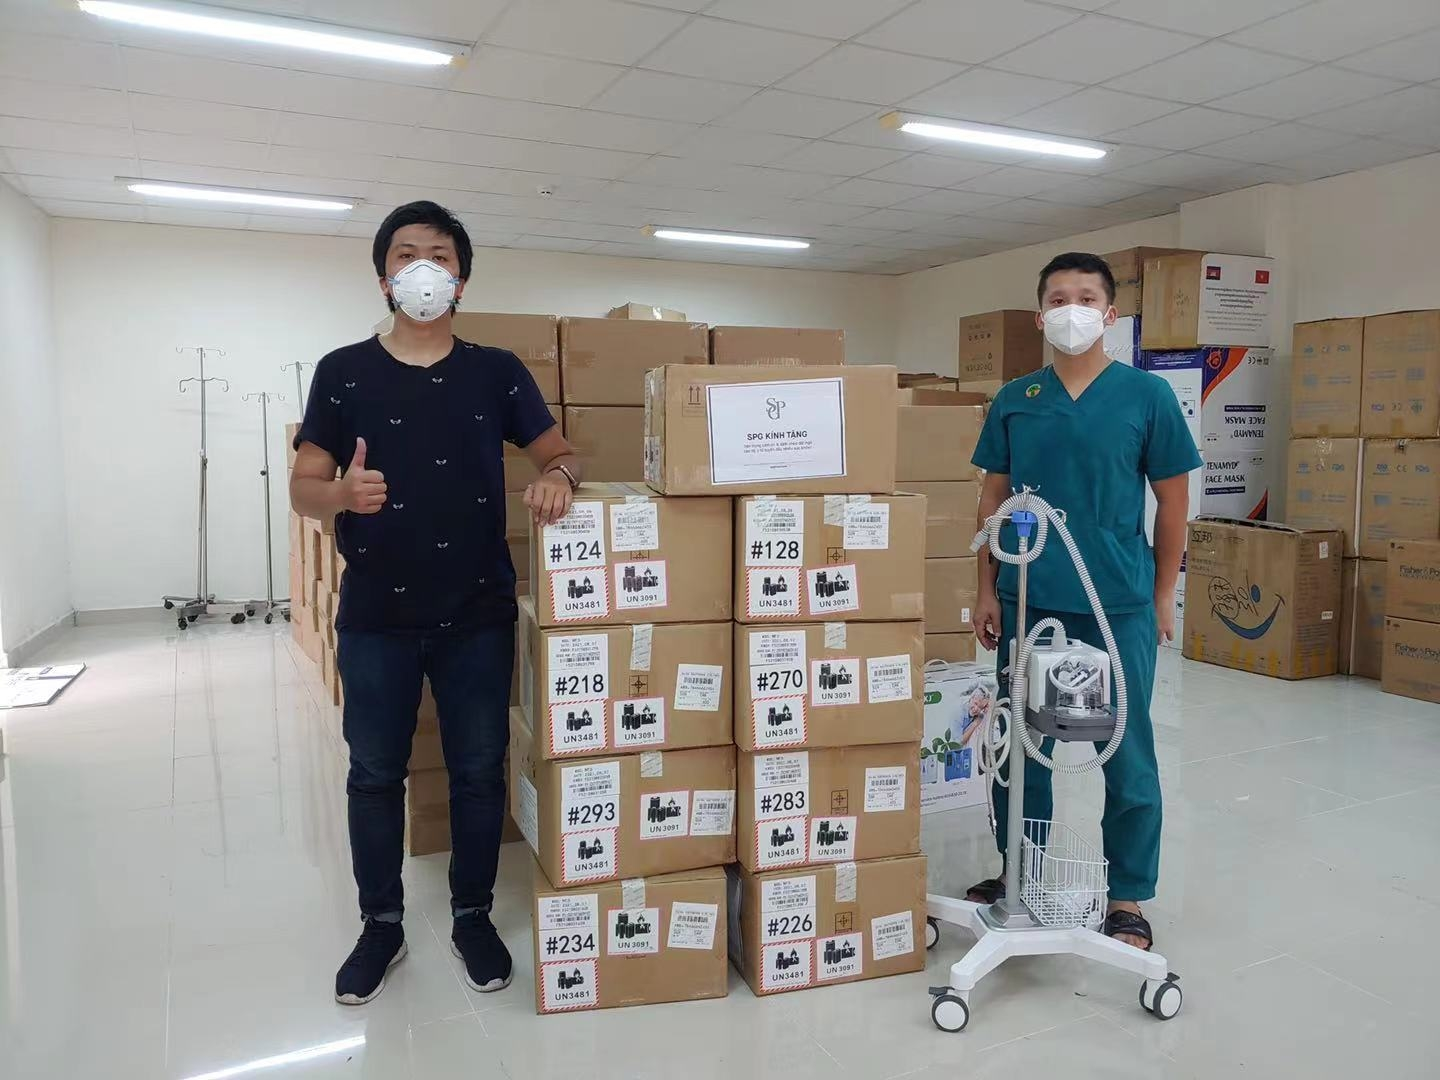 SPG Invest donates medical devices to 10 frontline hospitals in Ho Chi Minh City